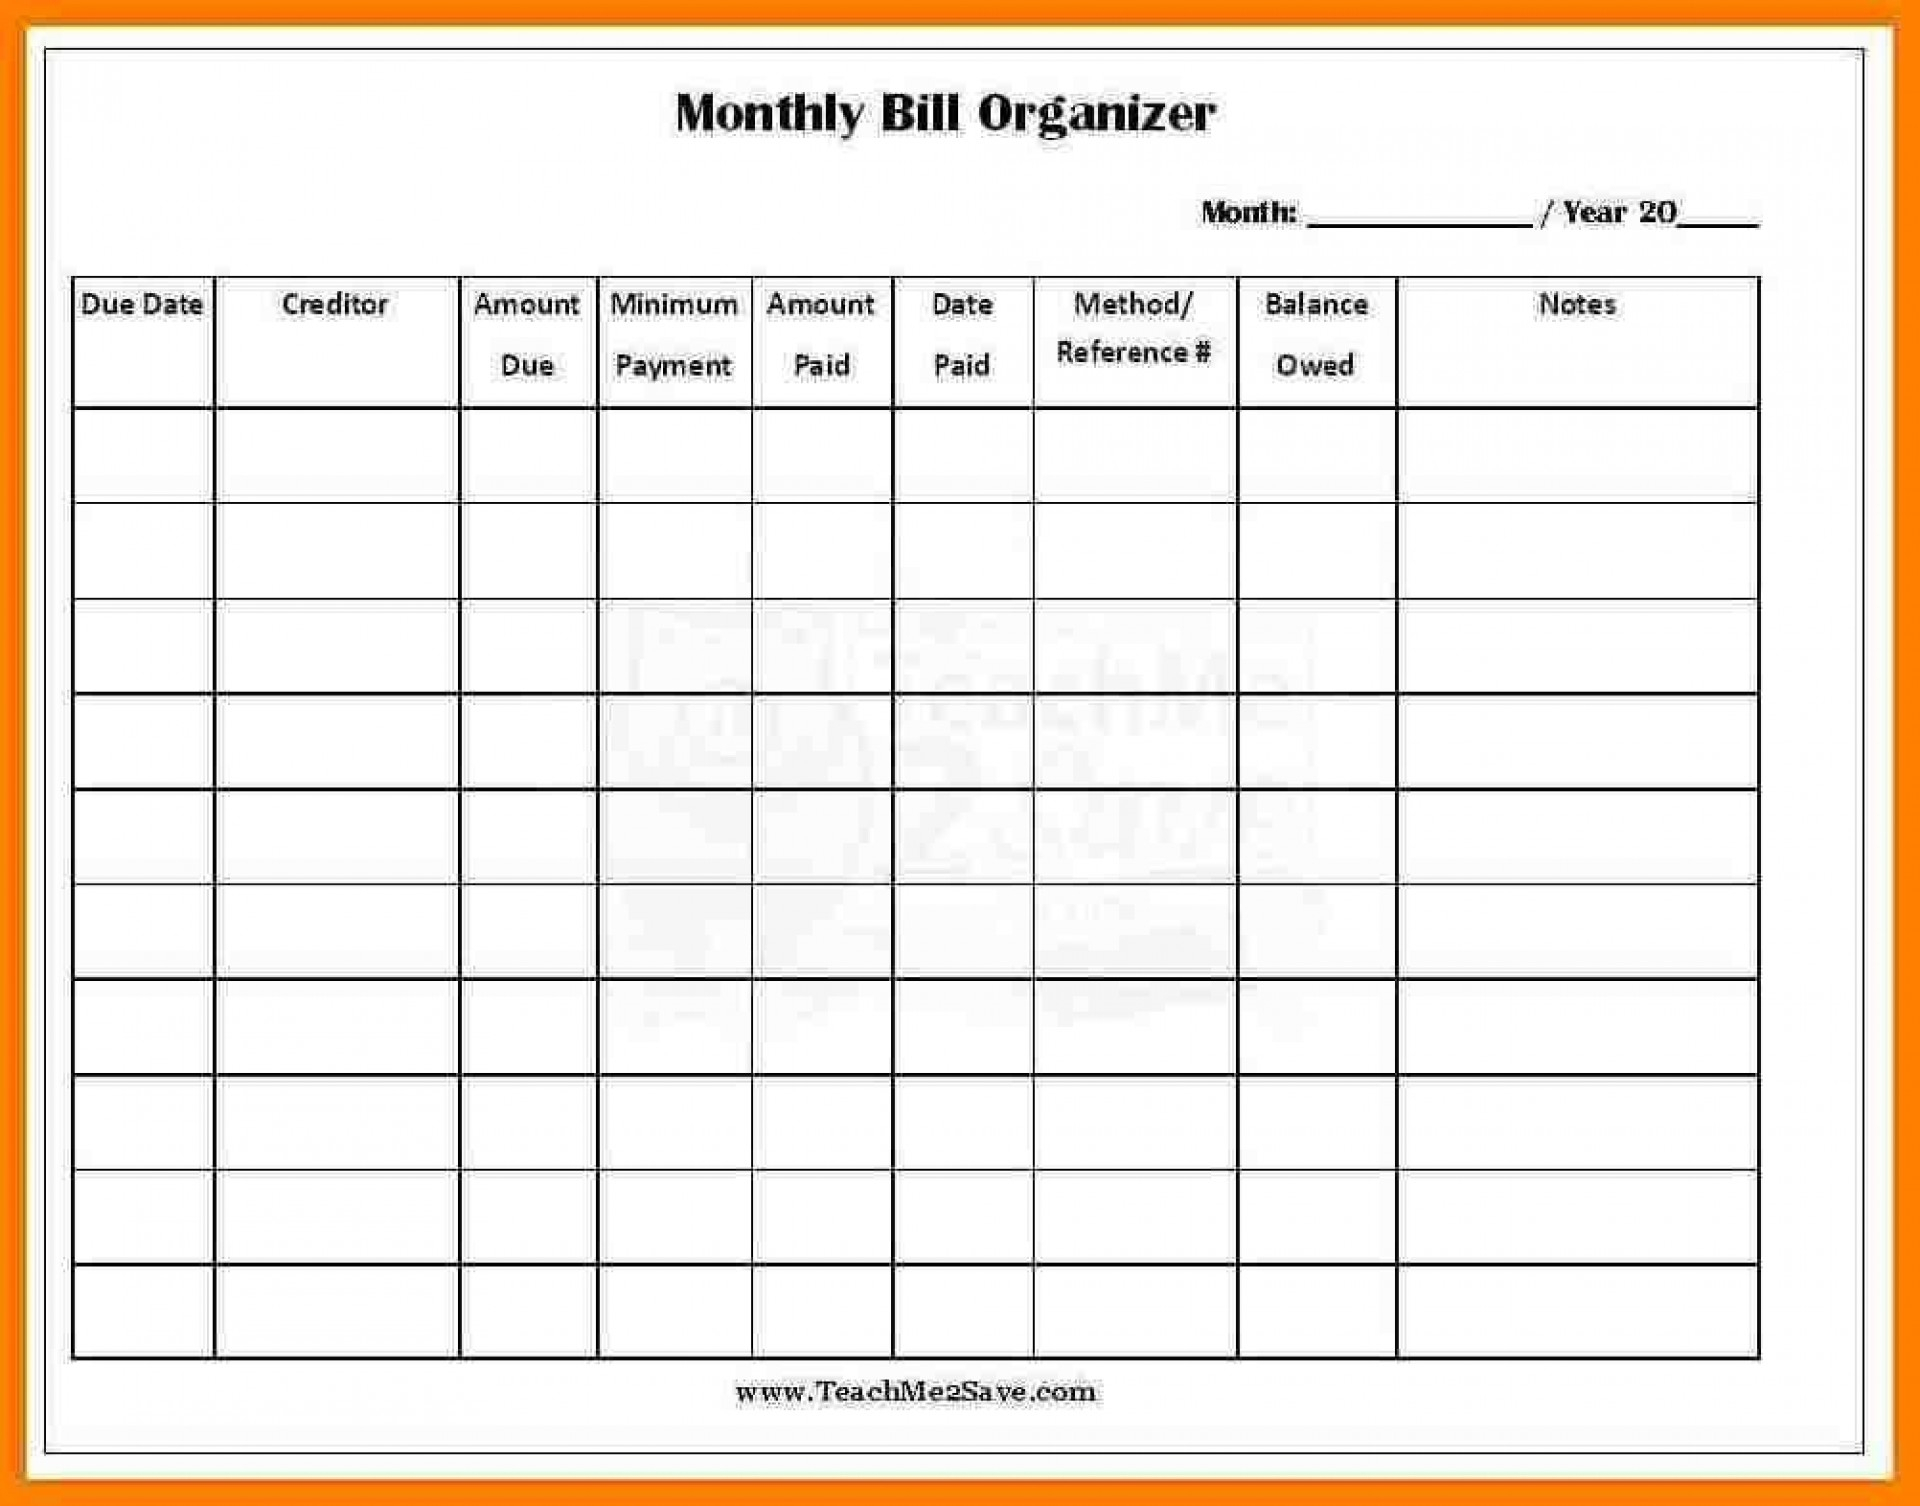 030 Monthly Bill Organizer Template Excel Free Spreadsheet intended for Monthly Bill Organizer Template Excel